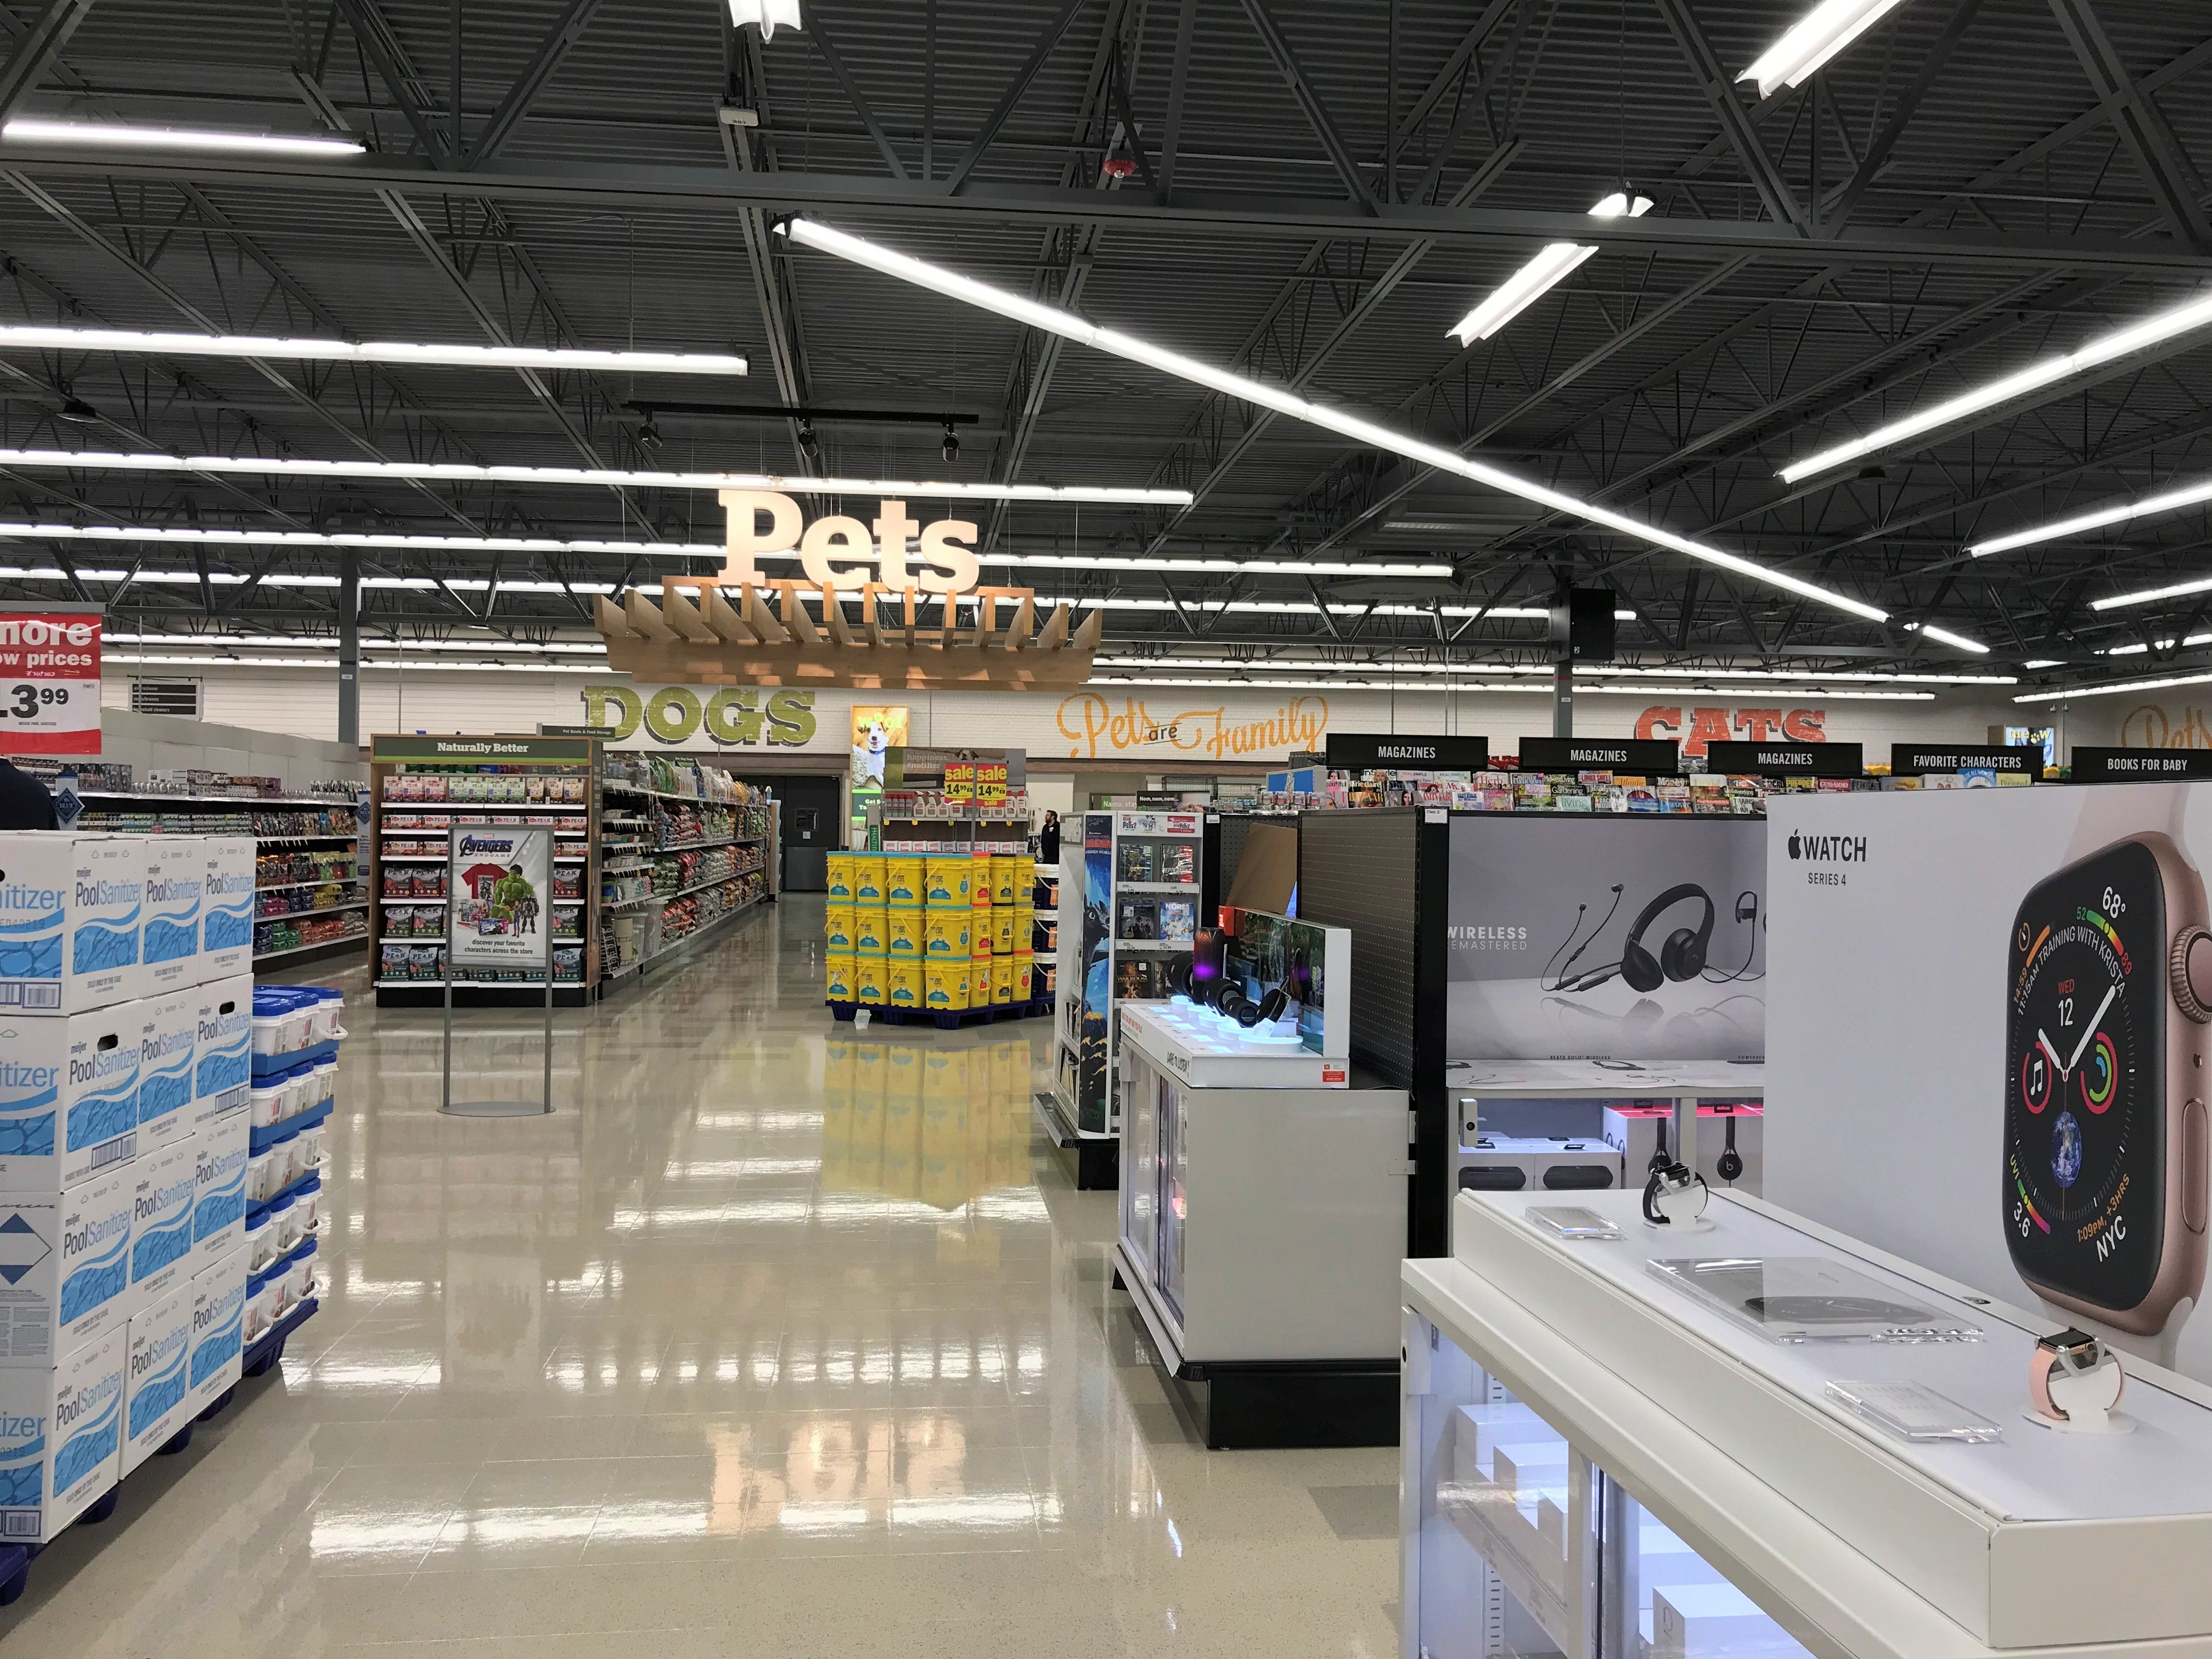 Meijer is officially open in Sheboygan. The new store features a pet section, cosmetics and other department store features.